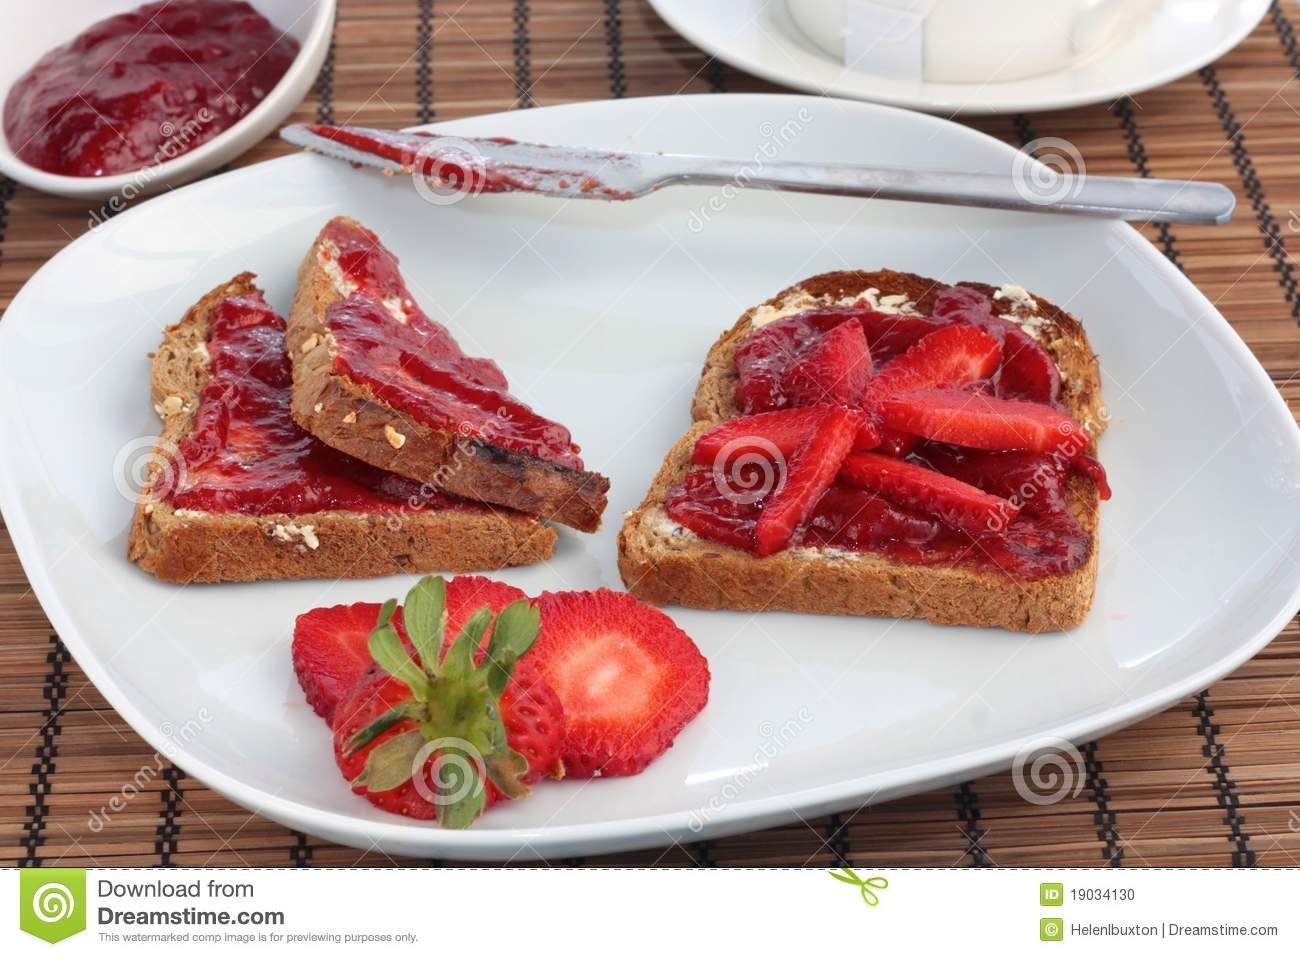 Breakfast of wholemeal toast with strawberry jelly